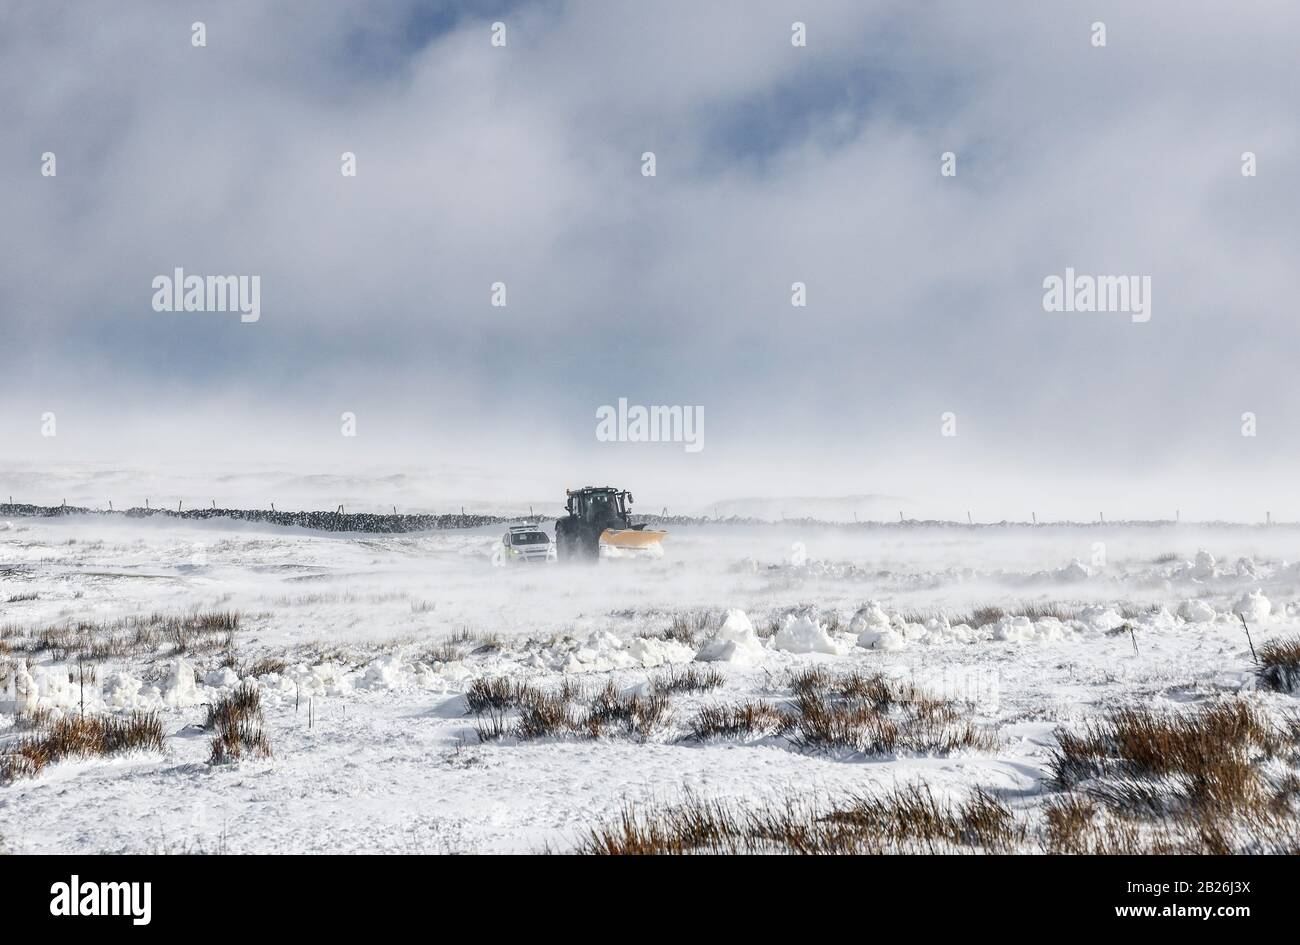 Teesdale, County Durham, UK. 1st March 2020. UK Weather.  The Teesdale and Weardale Search and Mountain Rescue Team, Police and snow plough driver Dan McLaughlin battled through deep snow and blizzard conditions at the height of Storm Jorge to rescue 8 off roaders, which included a child, who were trapped in 4 vehicles overnight on a remote moorland track near Coldberry End in Upper Teesdale.   Credit: David Forster/Alamy Live News Stock Photo